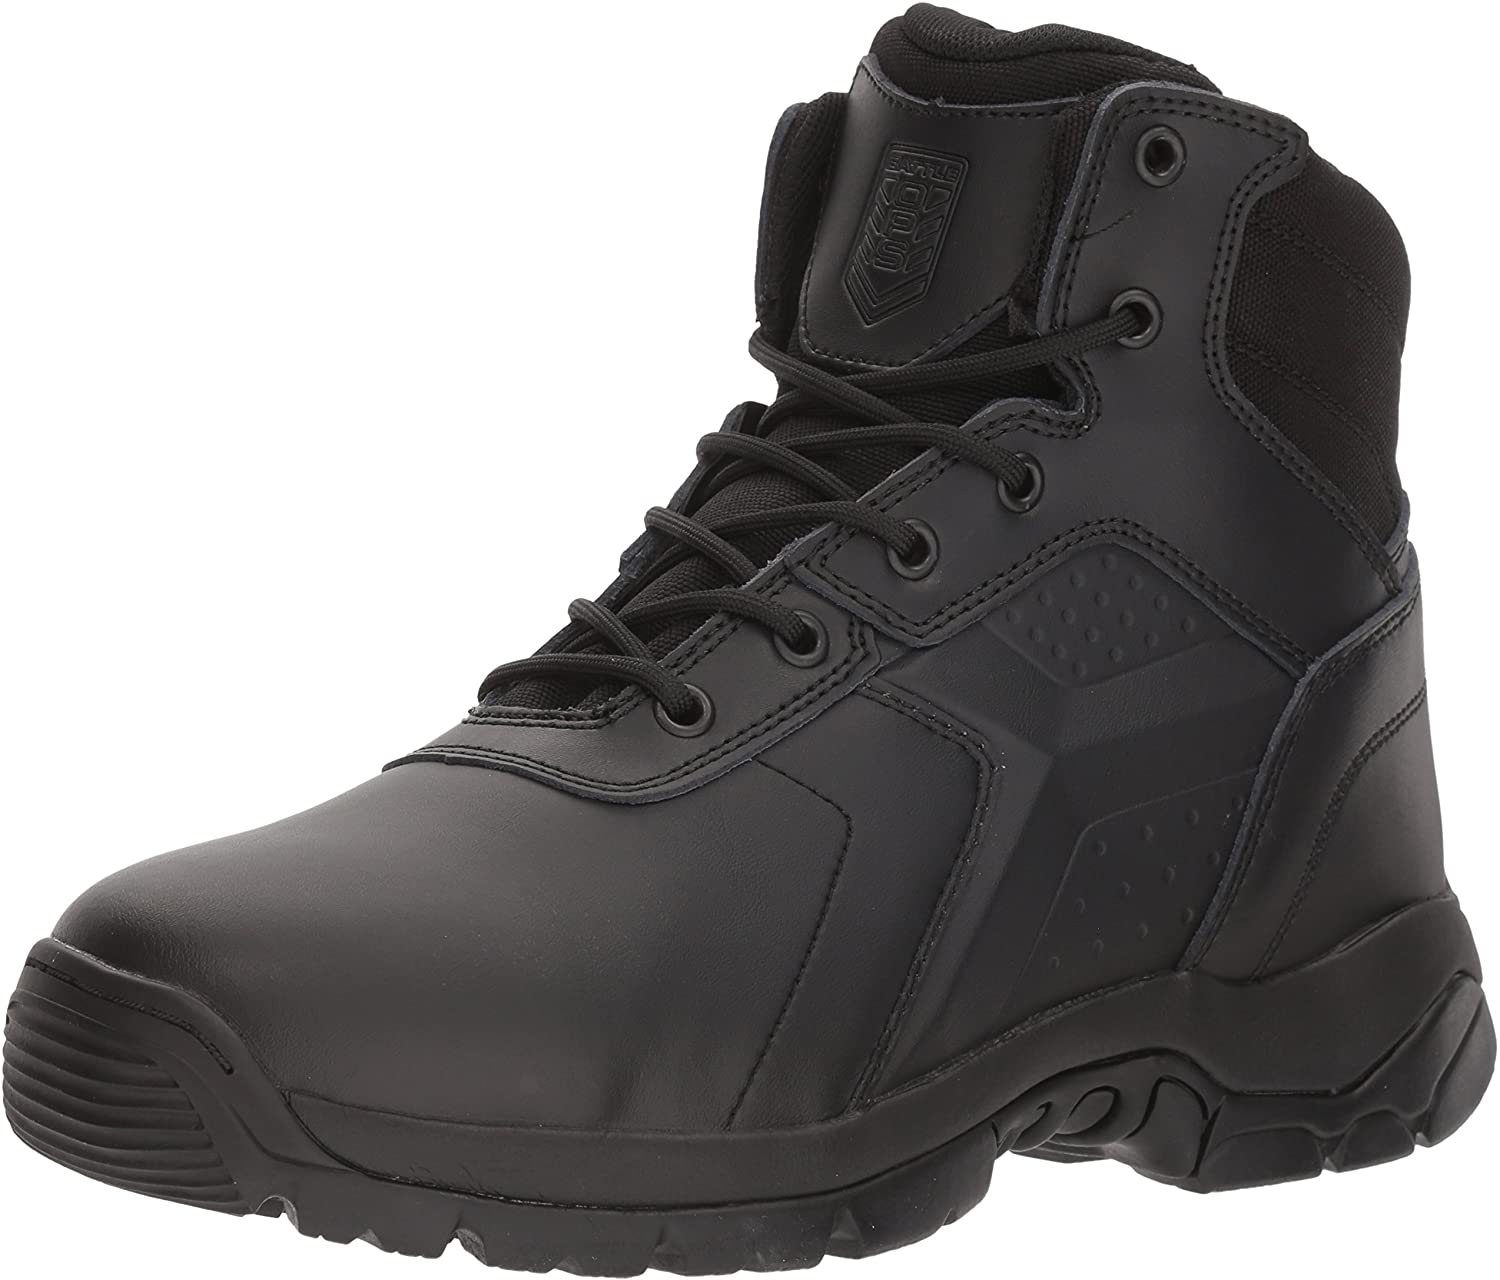 Battle Ops by BD Protective Equipment Men's 6-inch Waterproof Tactical Boot Soft Toe Bops6001 Military